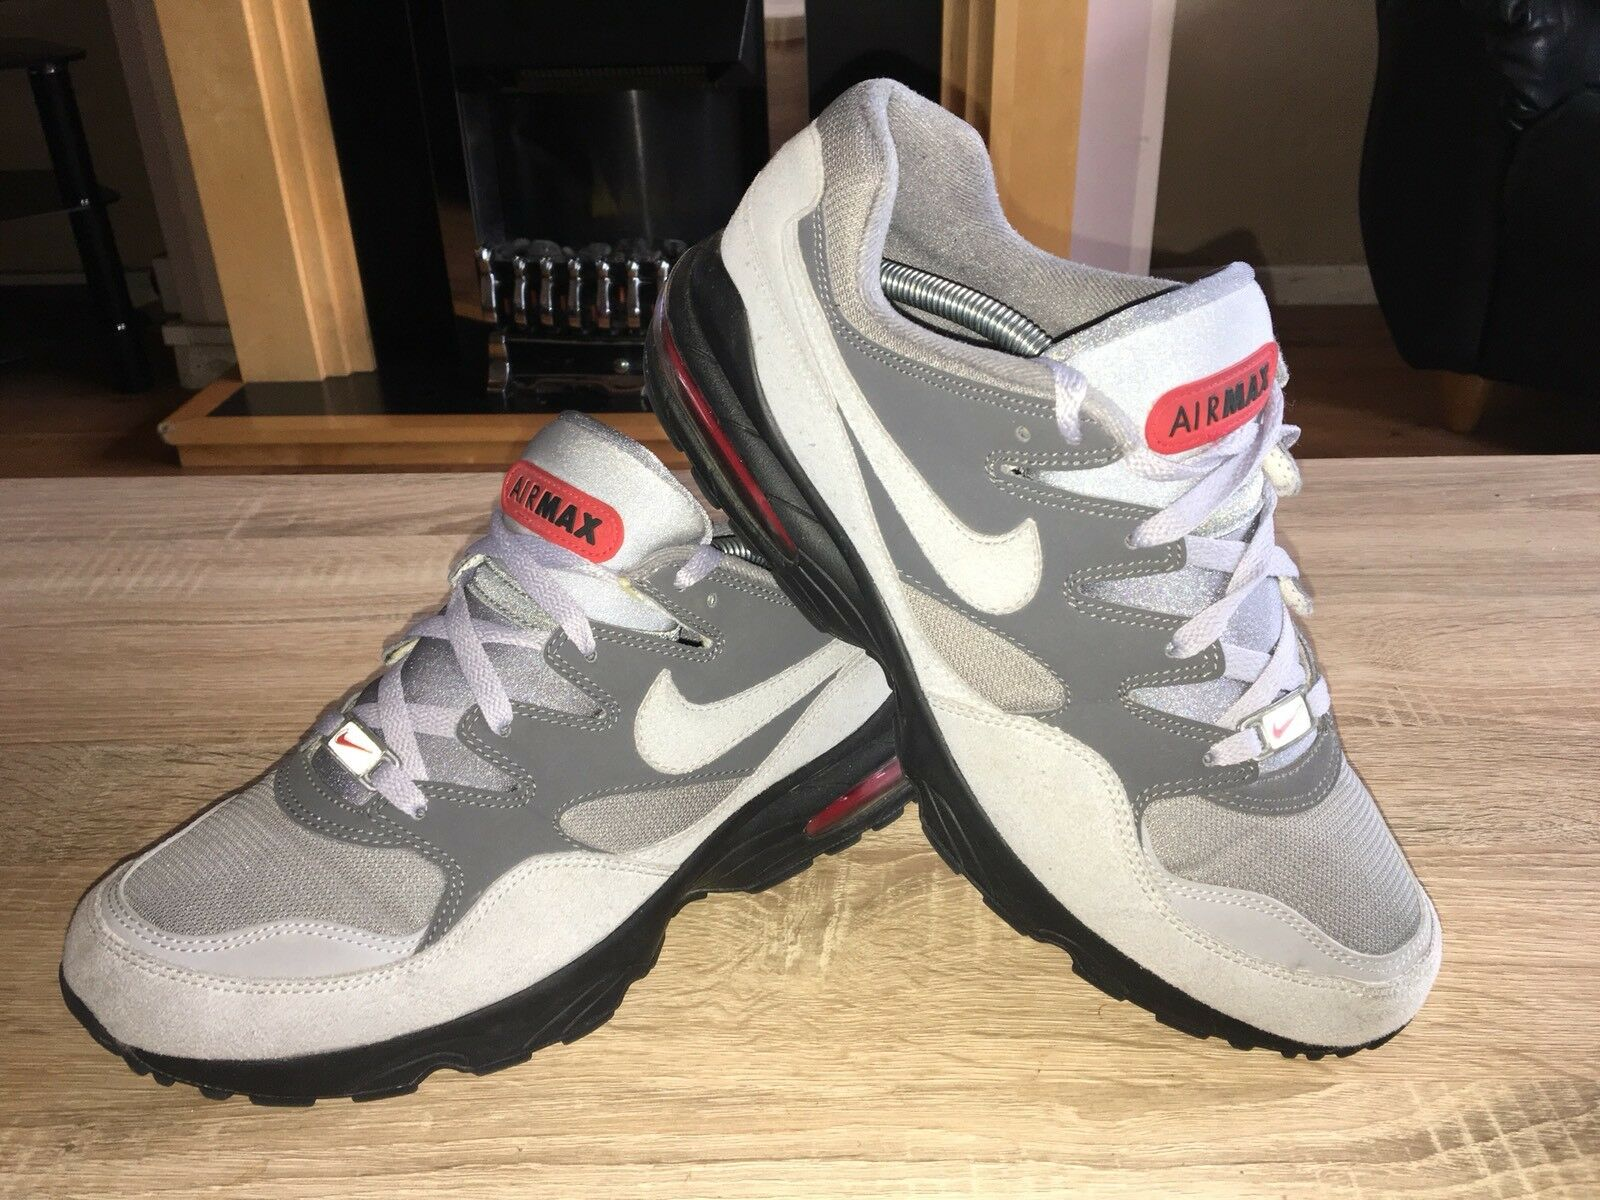 Nike Air Max Triax 94 UK10 homme Trainers Sneakers 747997-002